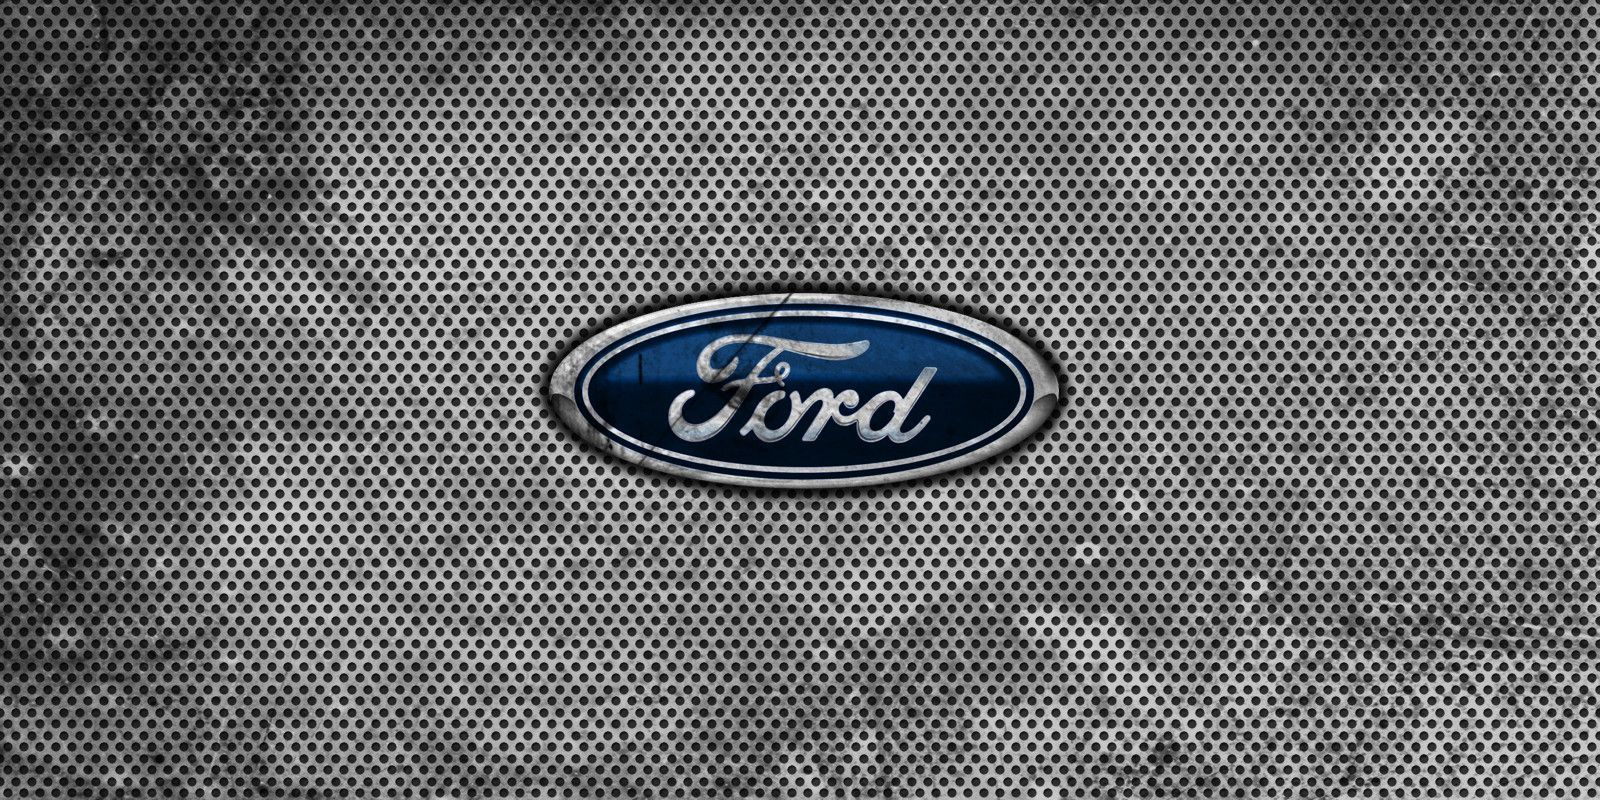 Ford Logo HD Wallpaper